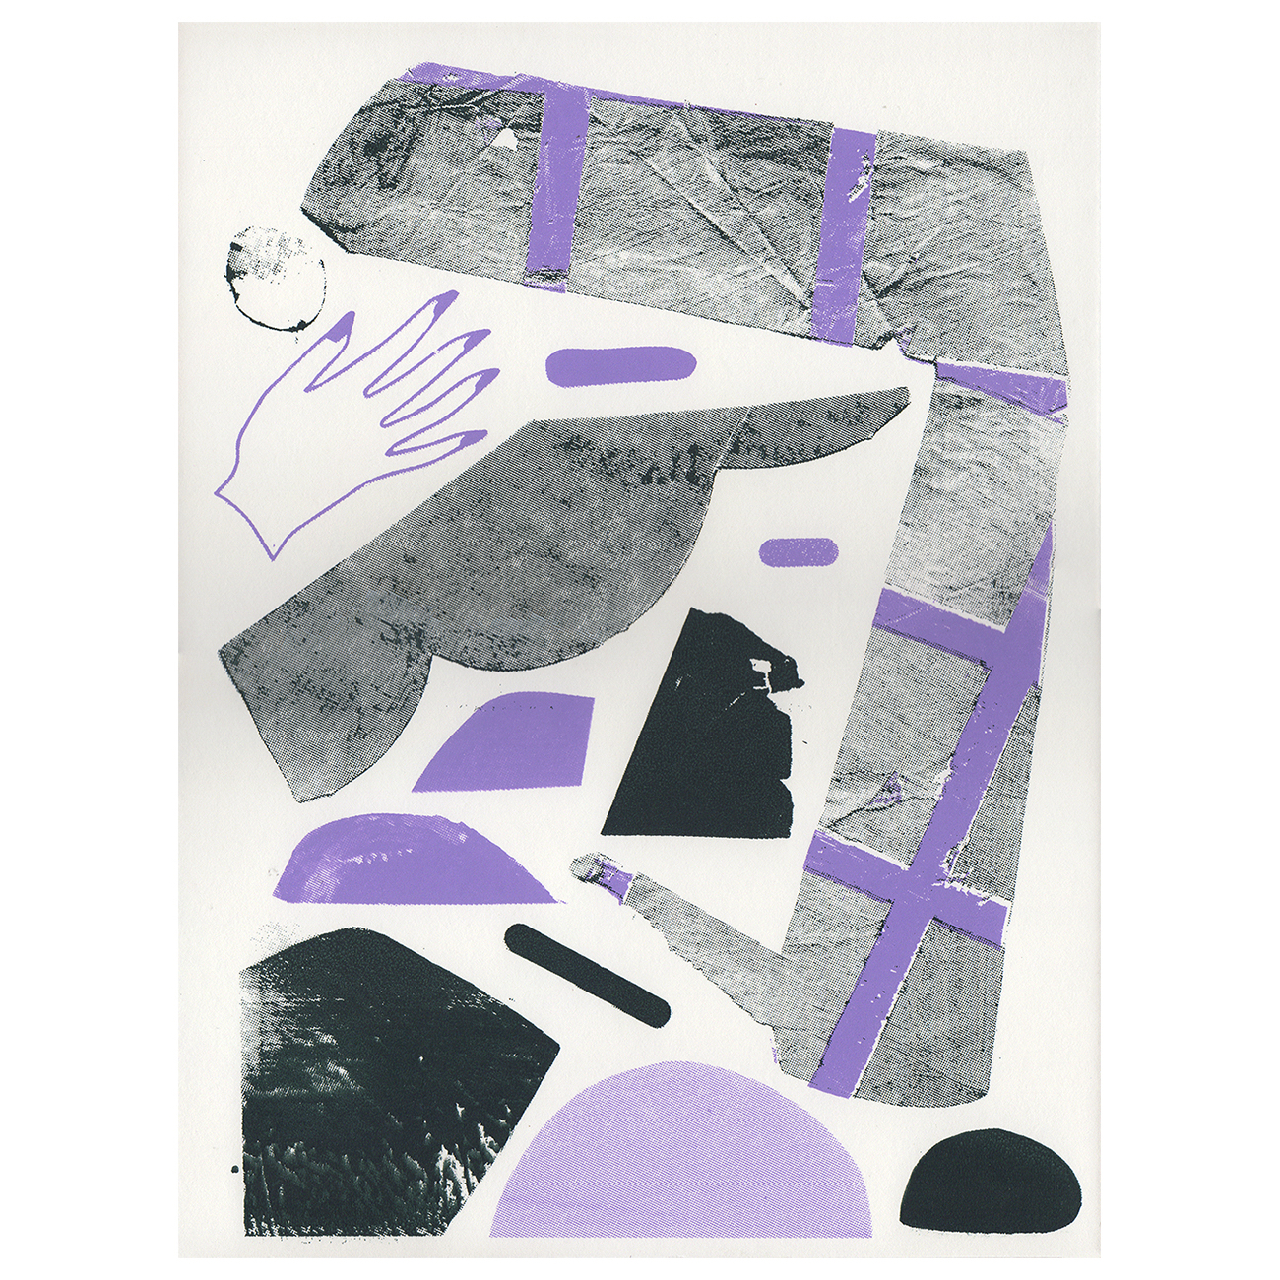 Same Pace 10 Silkscreen Print  -  Sara Willadsen, Same Pace 10, Silkscreen, Edition of 20, 12 x 9 inches, 2018Printed by Zak Worth$25 (plus shipping/handling)